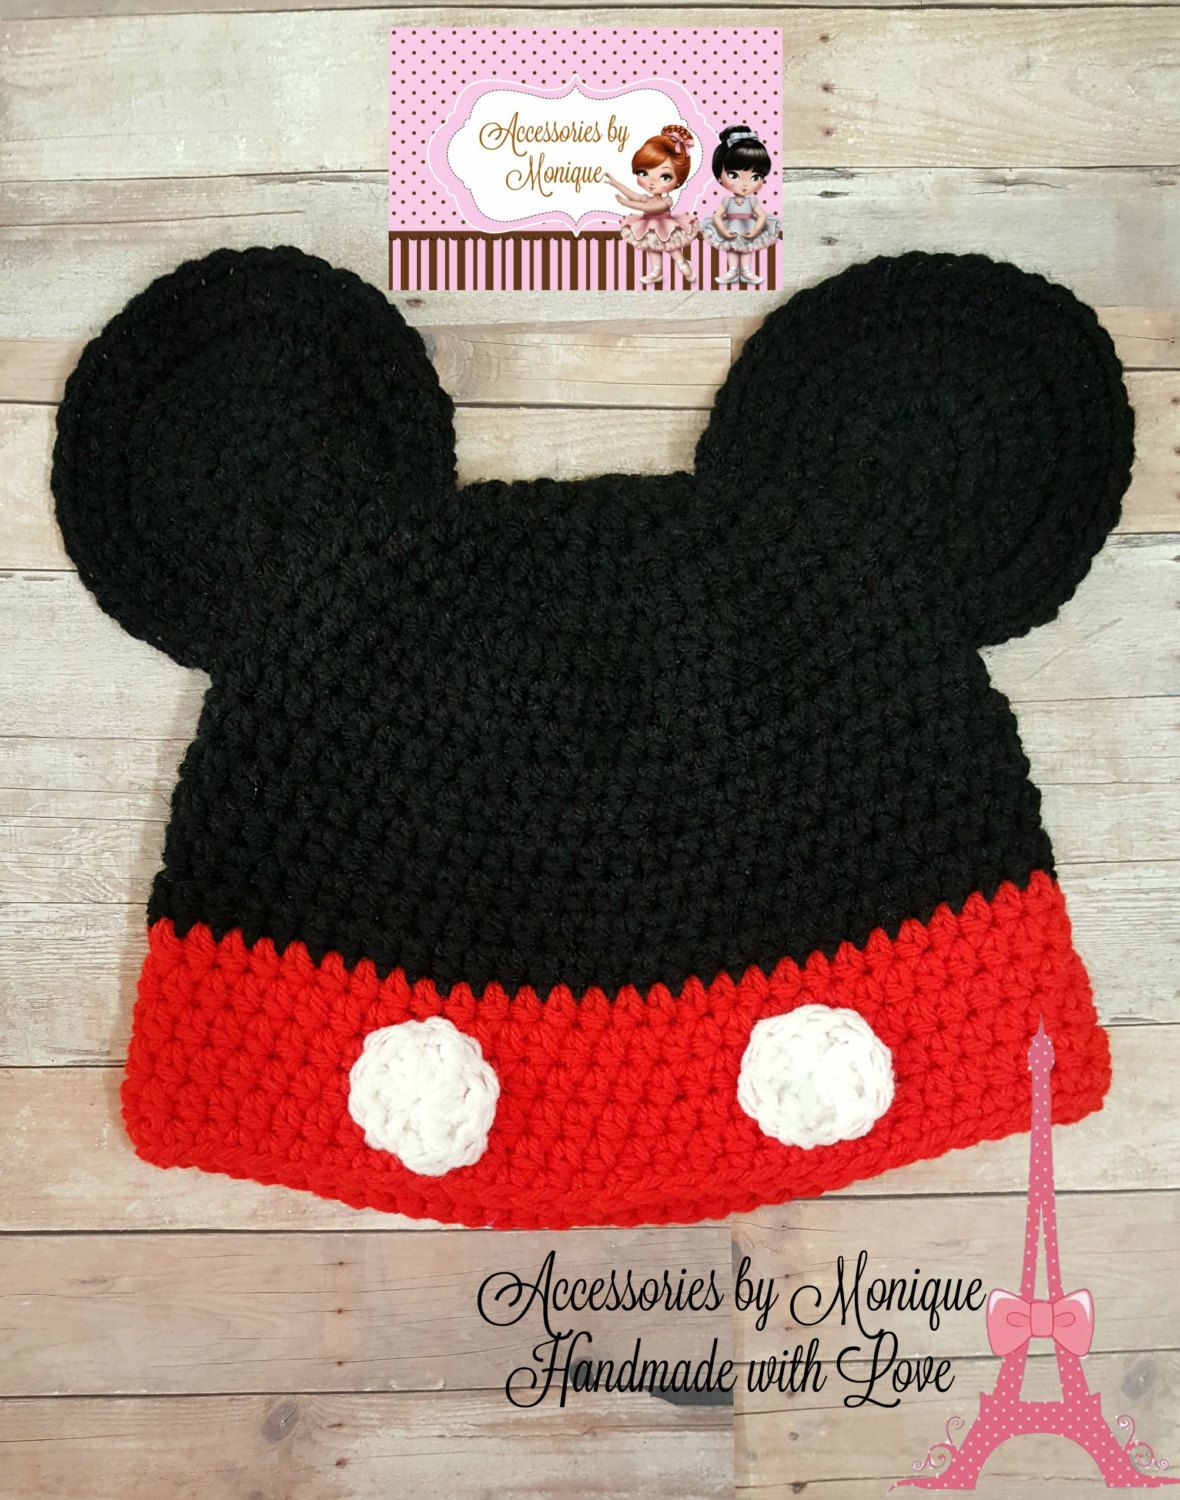 Crochet MICKEY MOUSE HAT Beanie with Ears Newborn Preemie Baby Toddler Girl  Boy Child Teen Woman Man Adult Kid Size Winter Hat Photo Prop by ... a0173206f2d